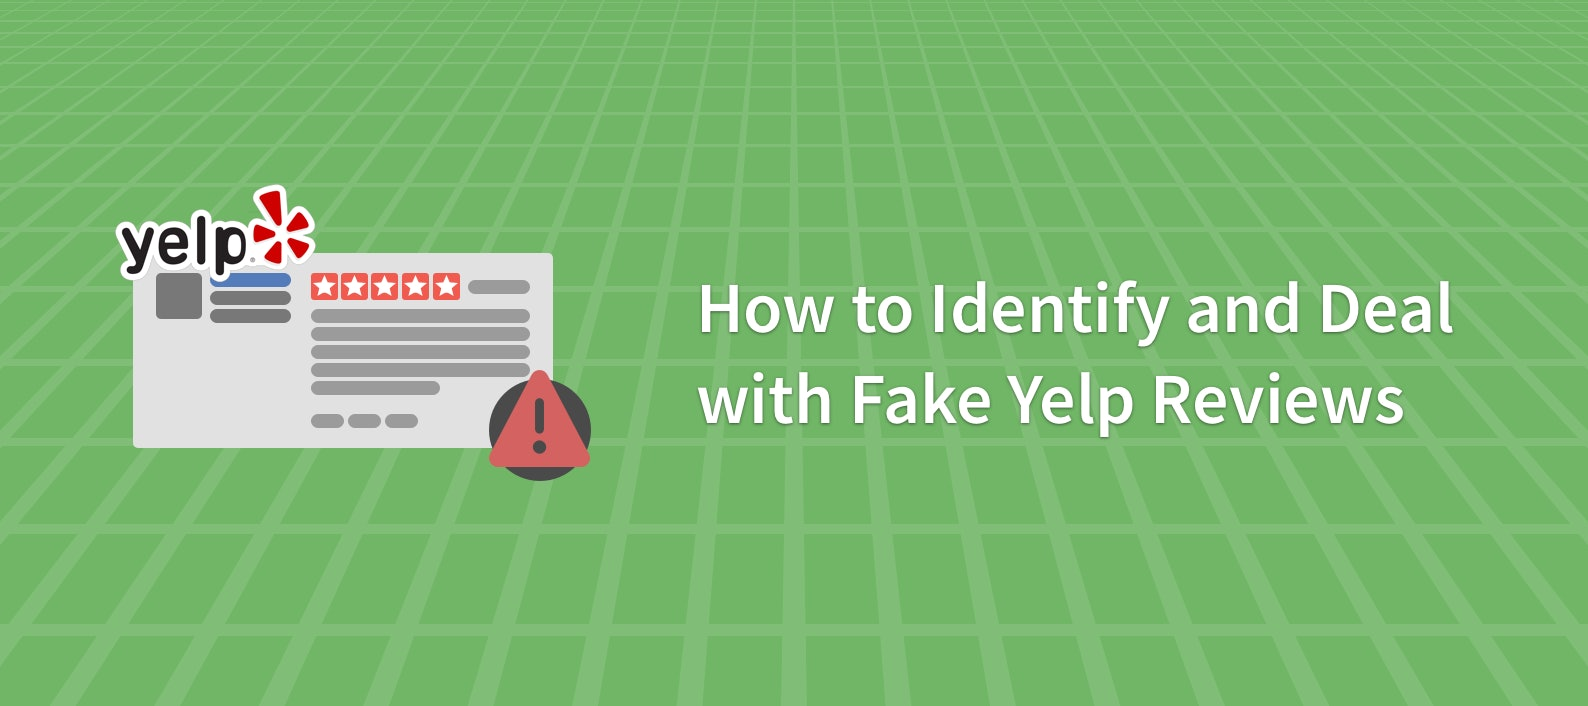 How to Identify and Deal with Fake Yelp Reviews